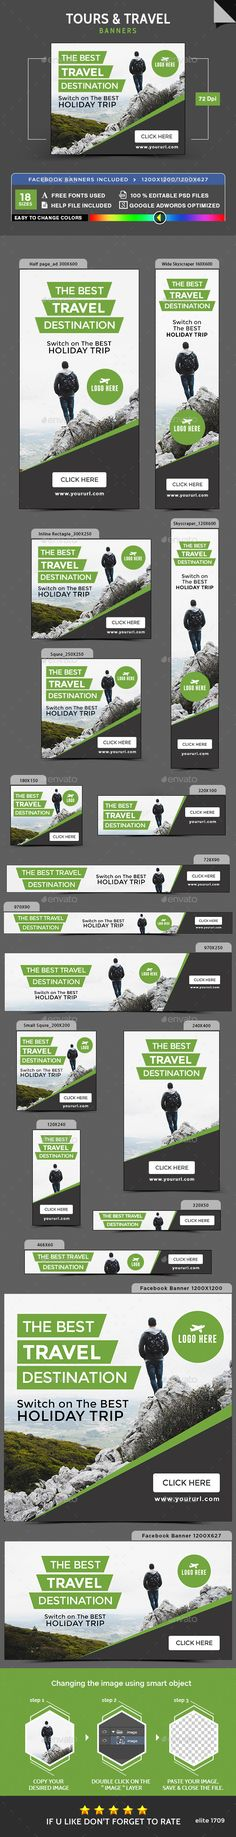 Tours & Travel Banners Template PSD. Download here: https://graphicriver.net/item/tours-travel-banners/17388980?ref=ksioks